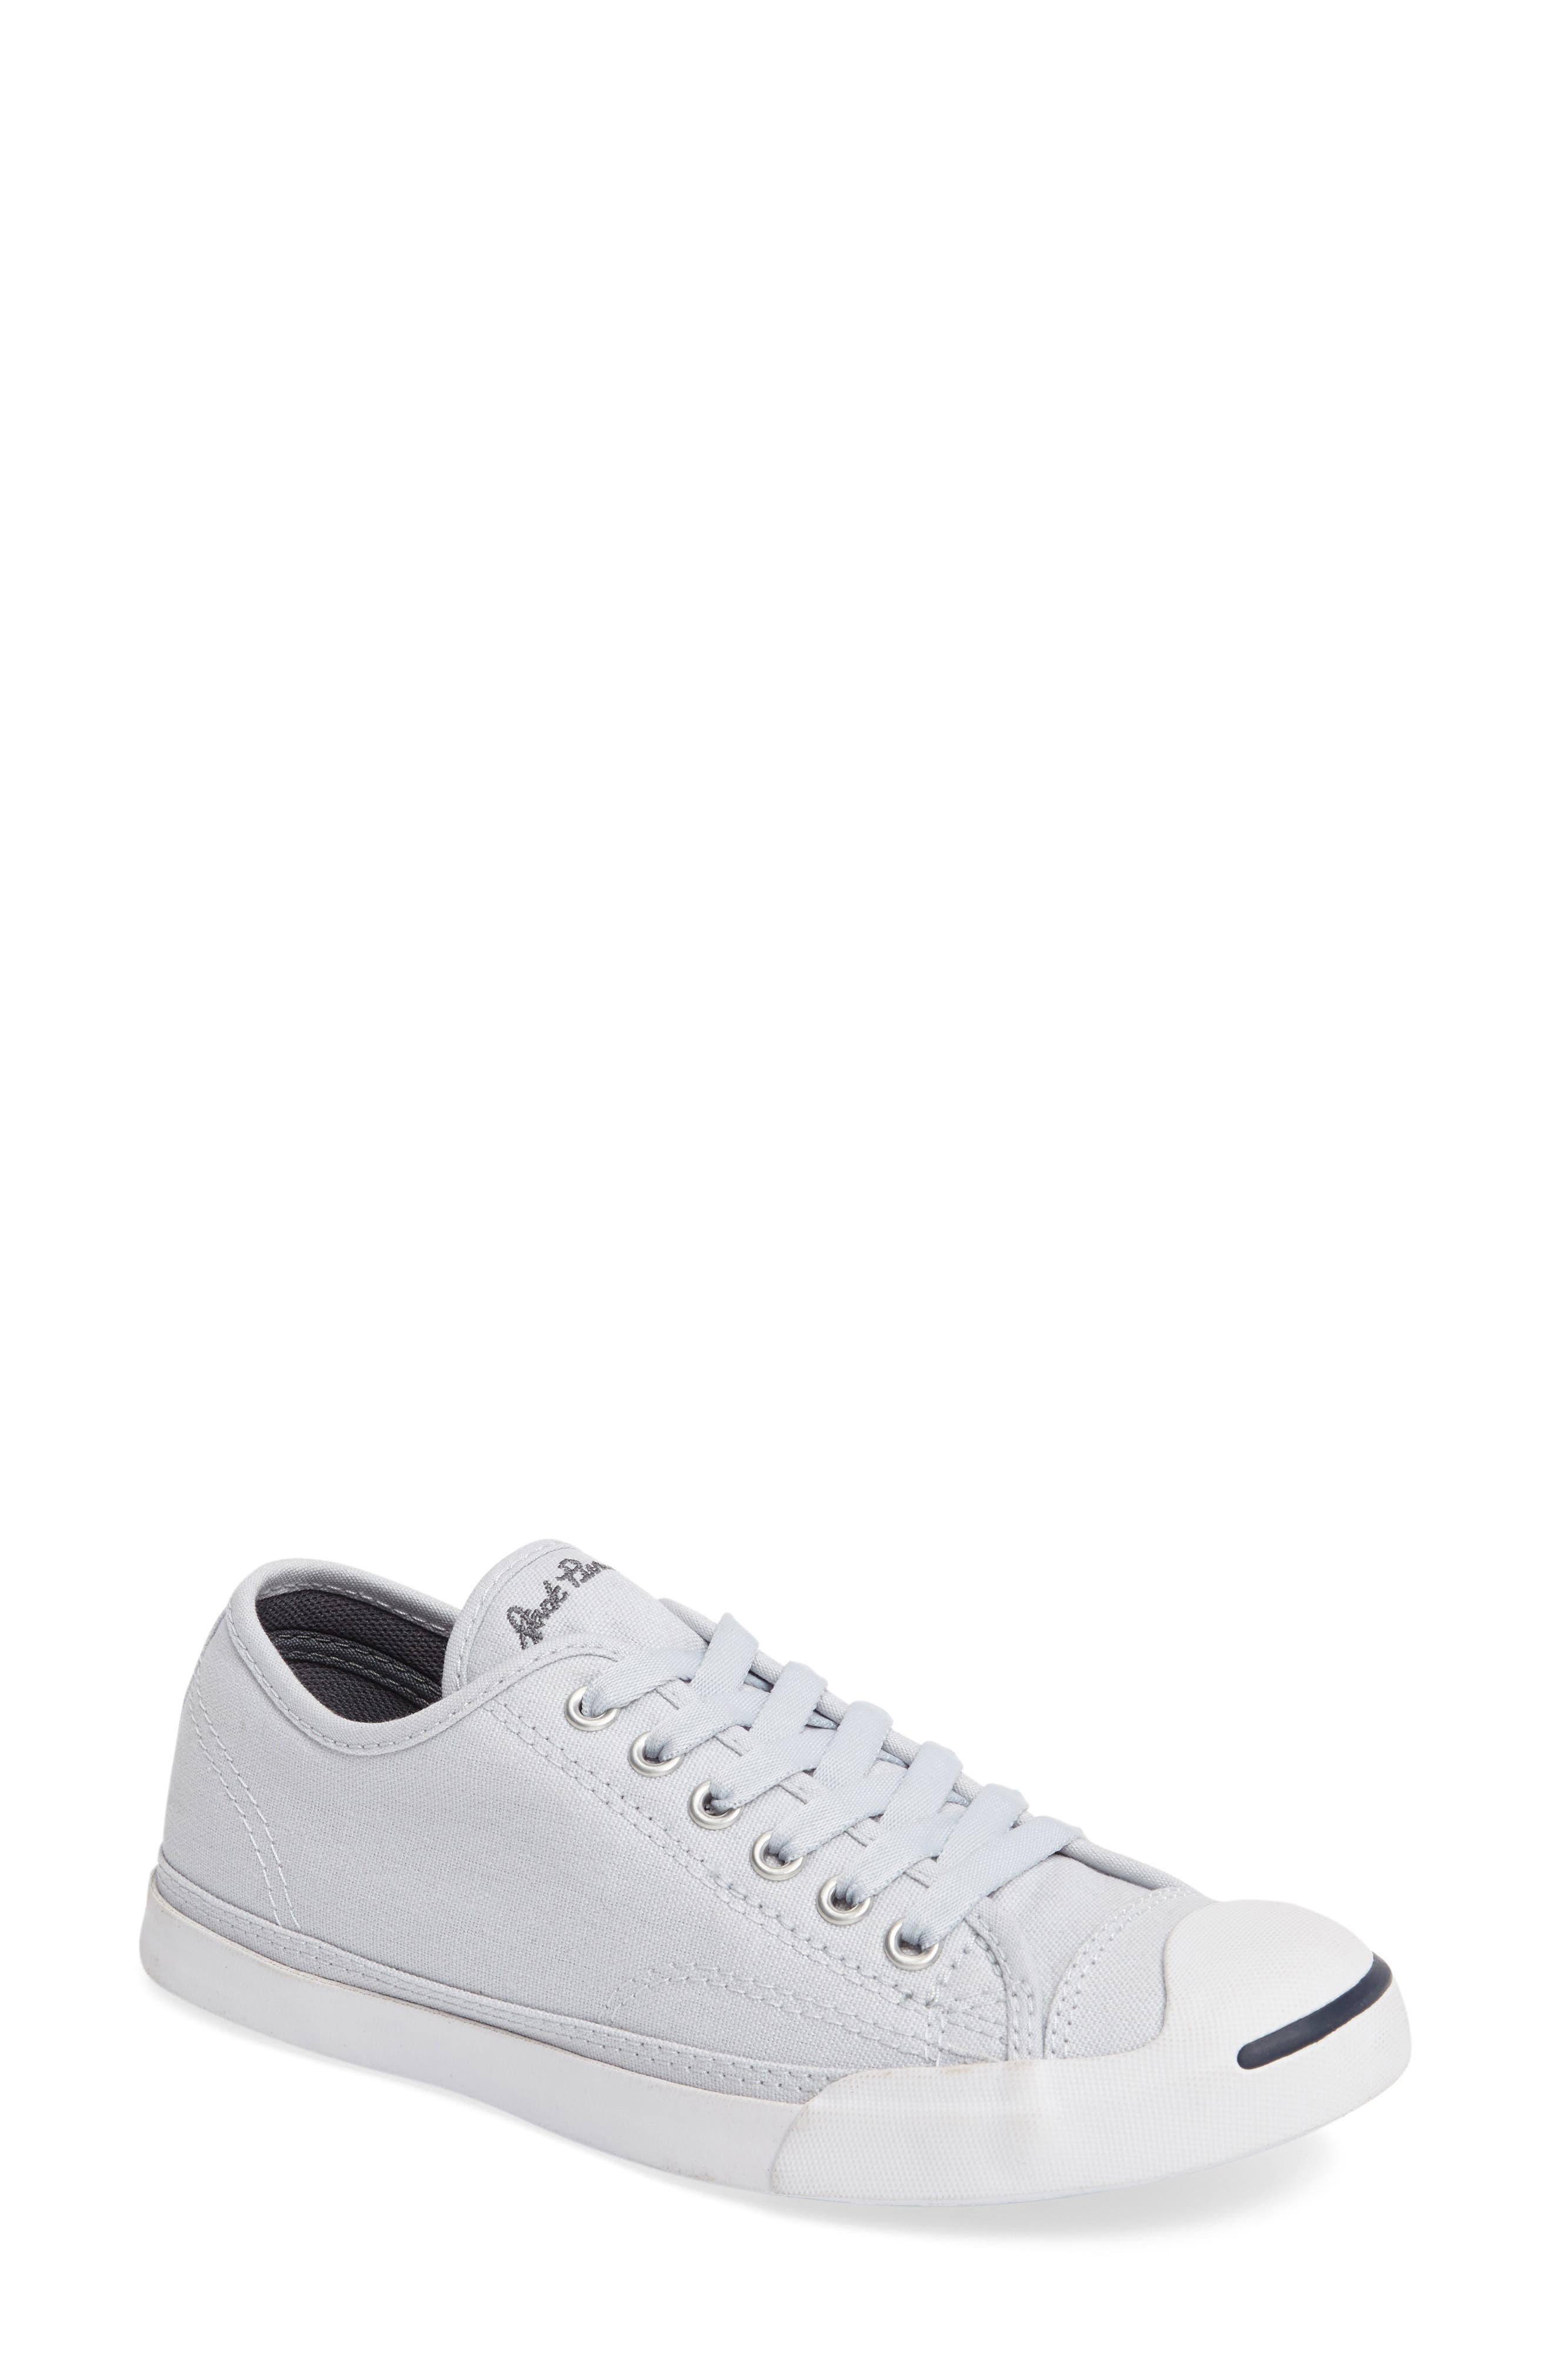 Jack Purcell Signature Ox Low Top Sneaker,                         Main,                         color, Platinum